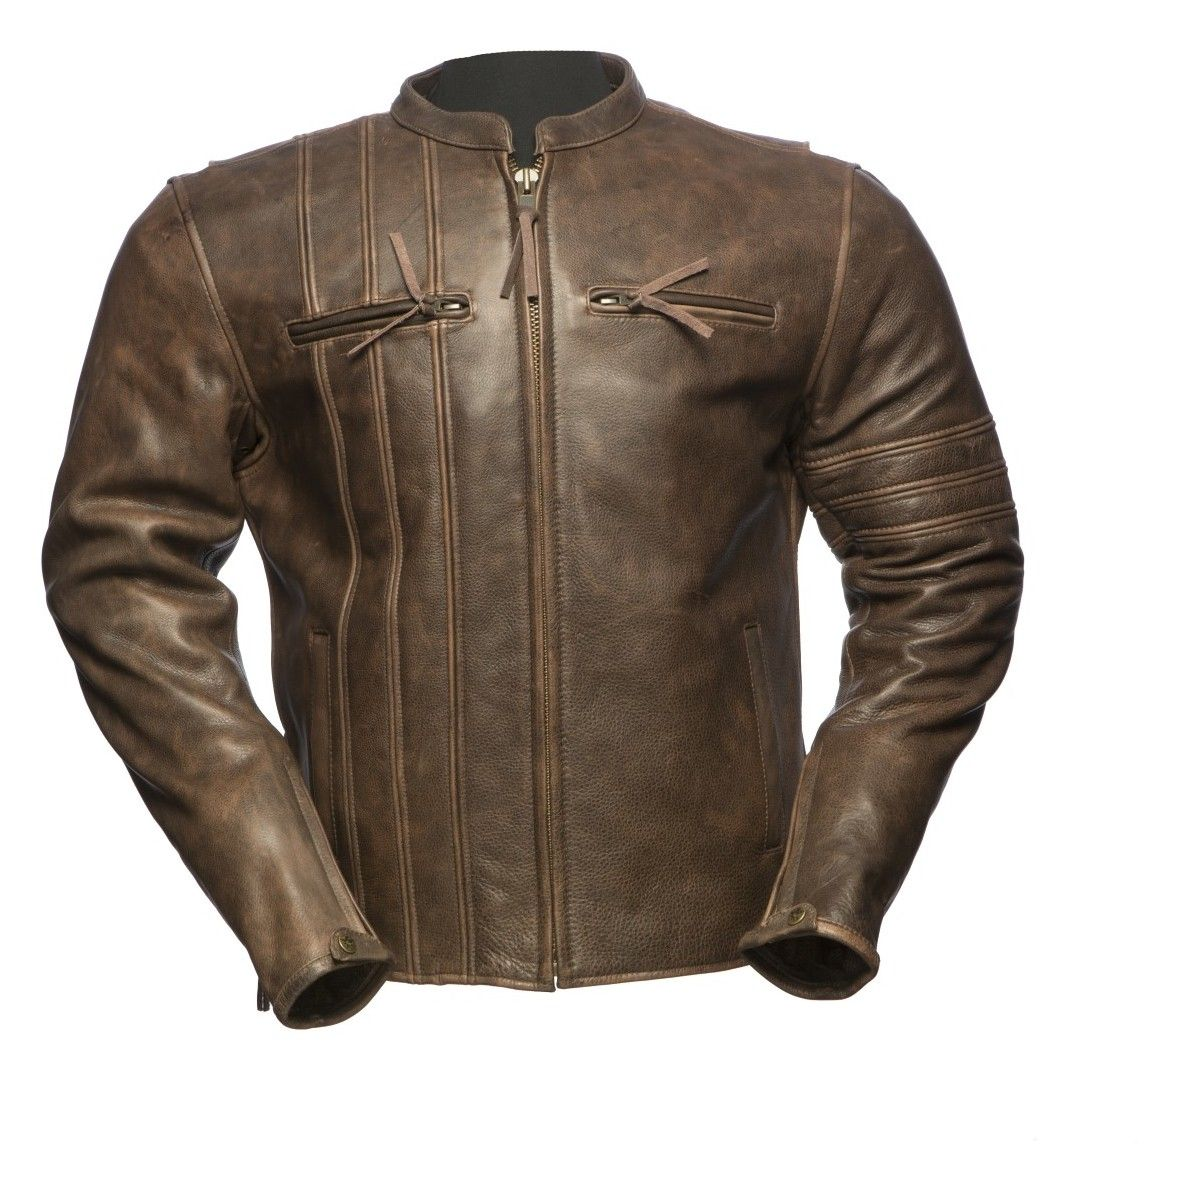 bfac85571 First Manufacturing Cafe A-Lister Jacket in 2019 | Motorbike Jacket ...